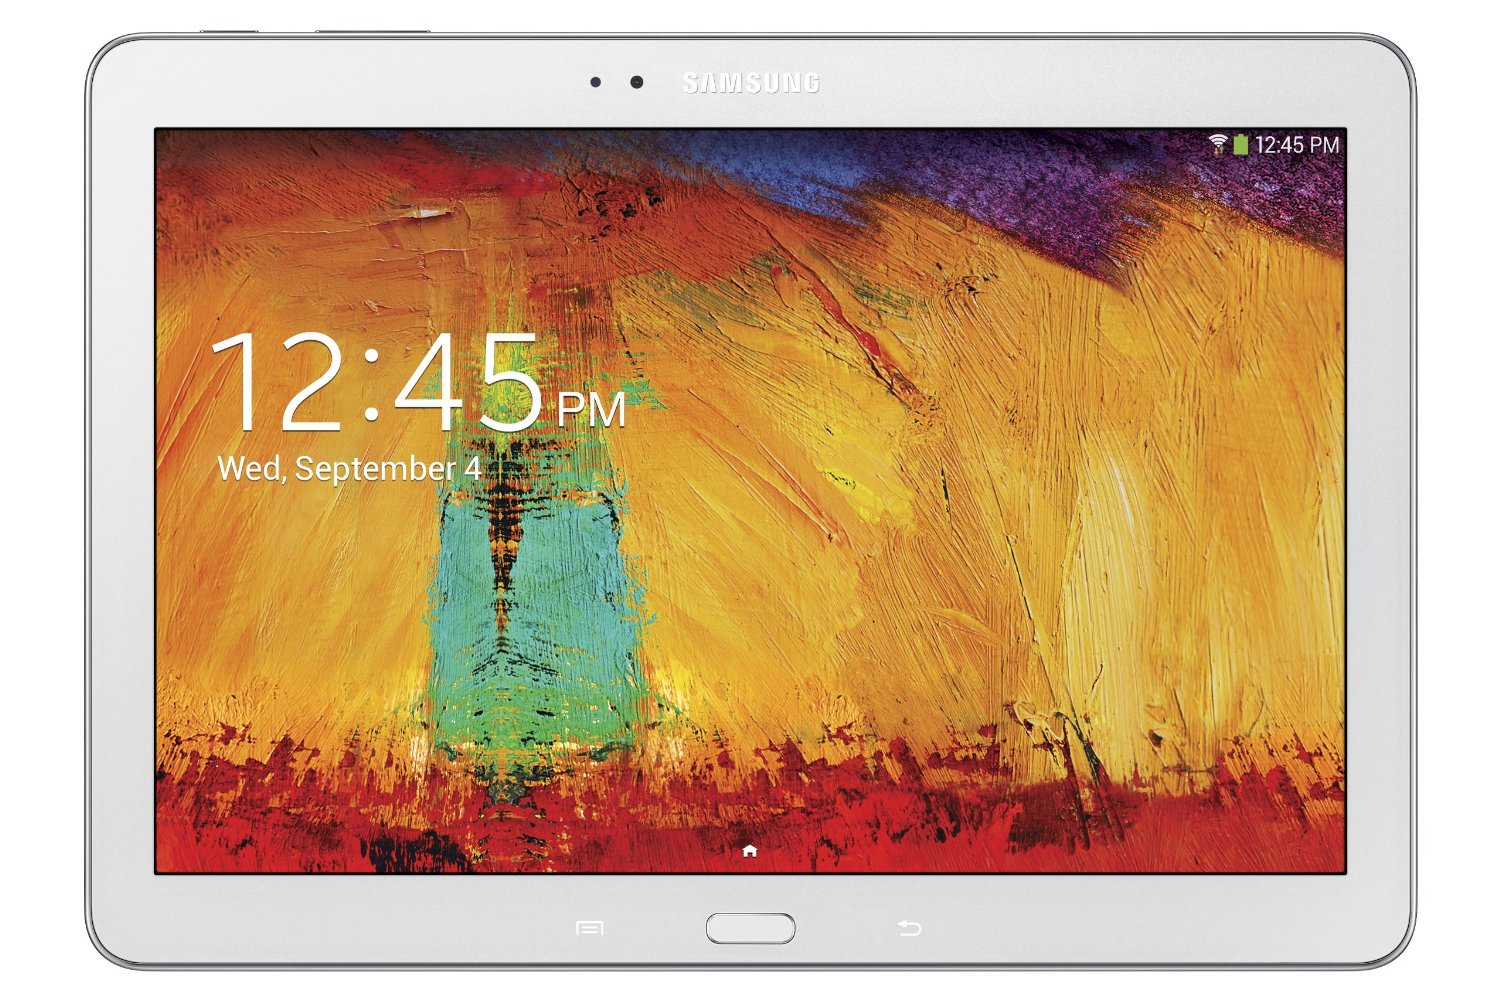 Amazon.com : Samsung Galaxy Note 10.1 2014 Edition (16GB, White) : Tablet Computers